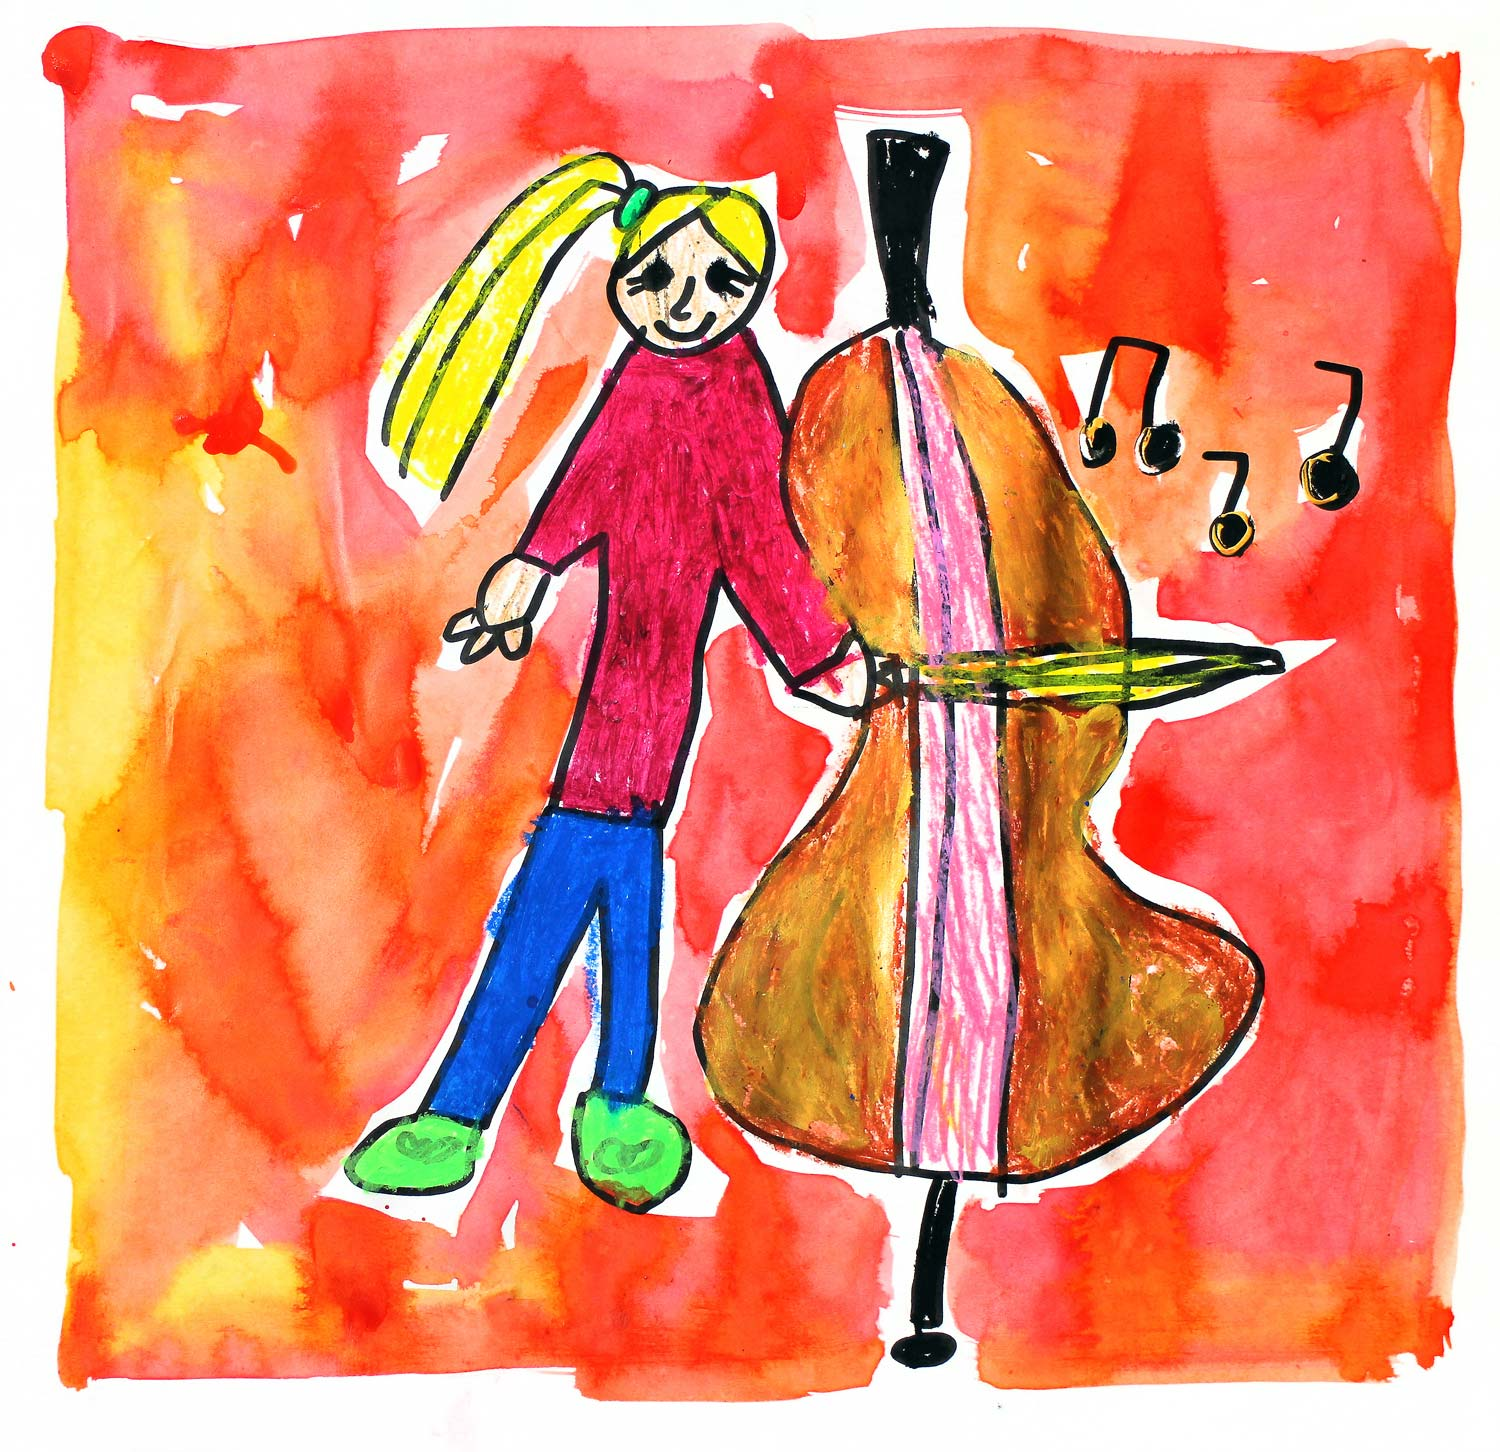 Student artwork of a girl playing a double bass